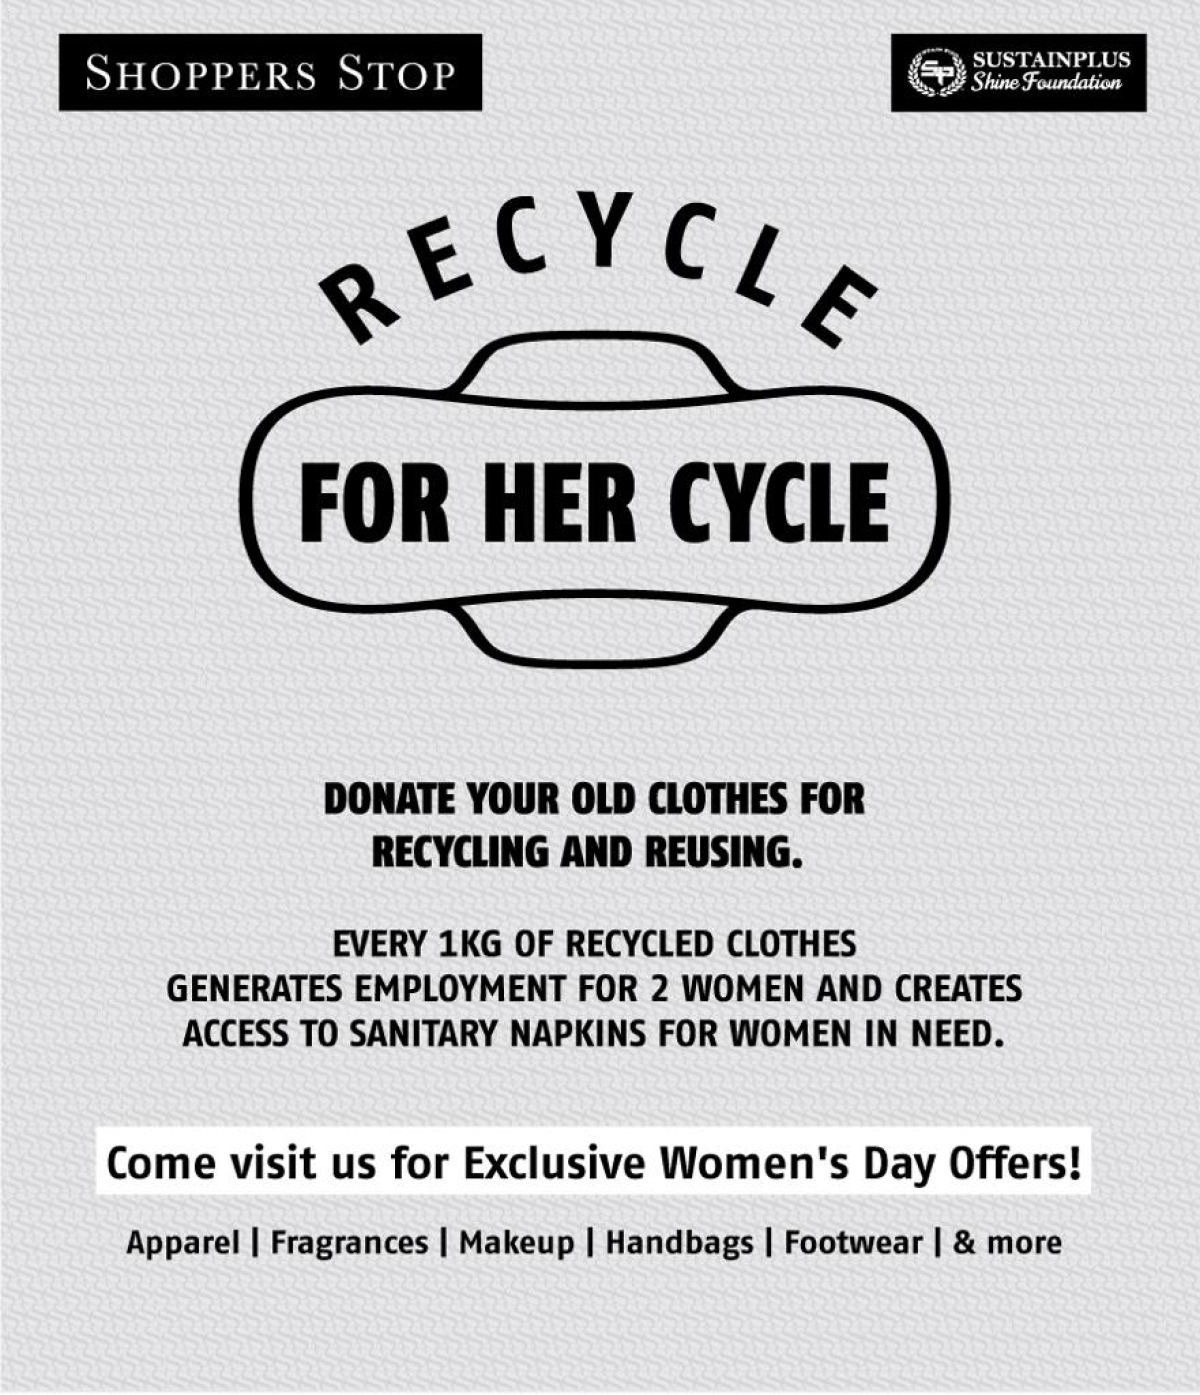 Shoppers Stop launches 'Recycle for her Cycle' program on Women's Day